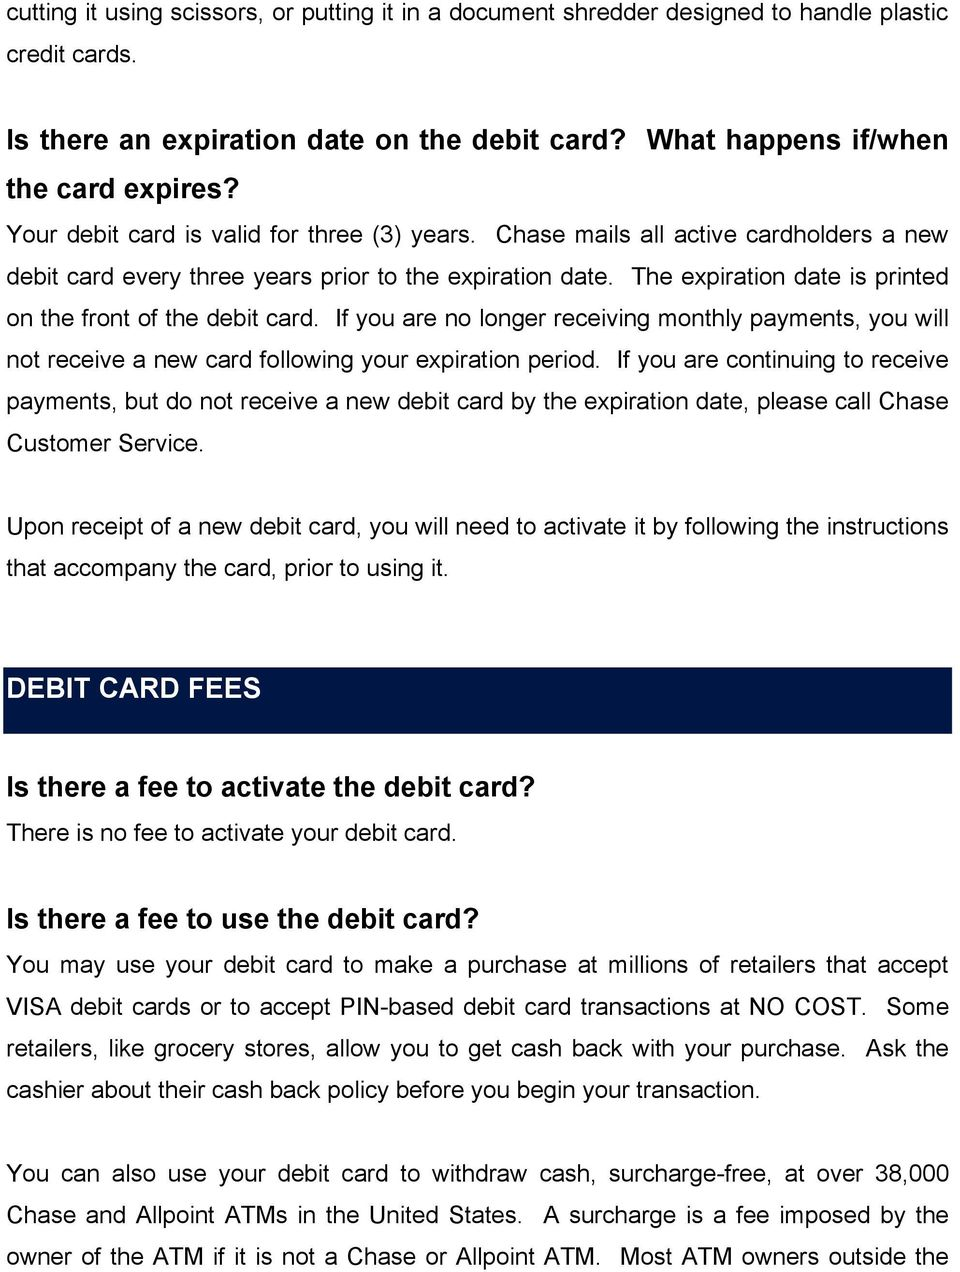 The expiration date is printed on the front of the debit card. If you are no longer receiving monthly payments, you will not receive a new card following your expiration period.